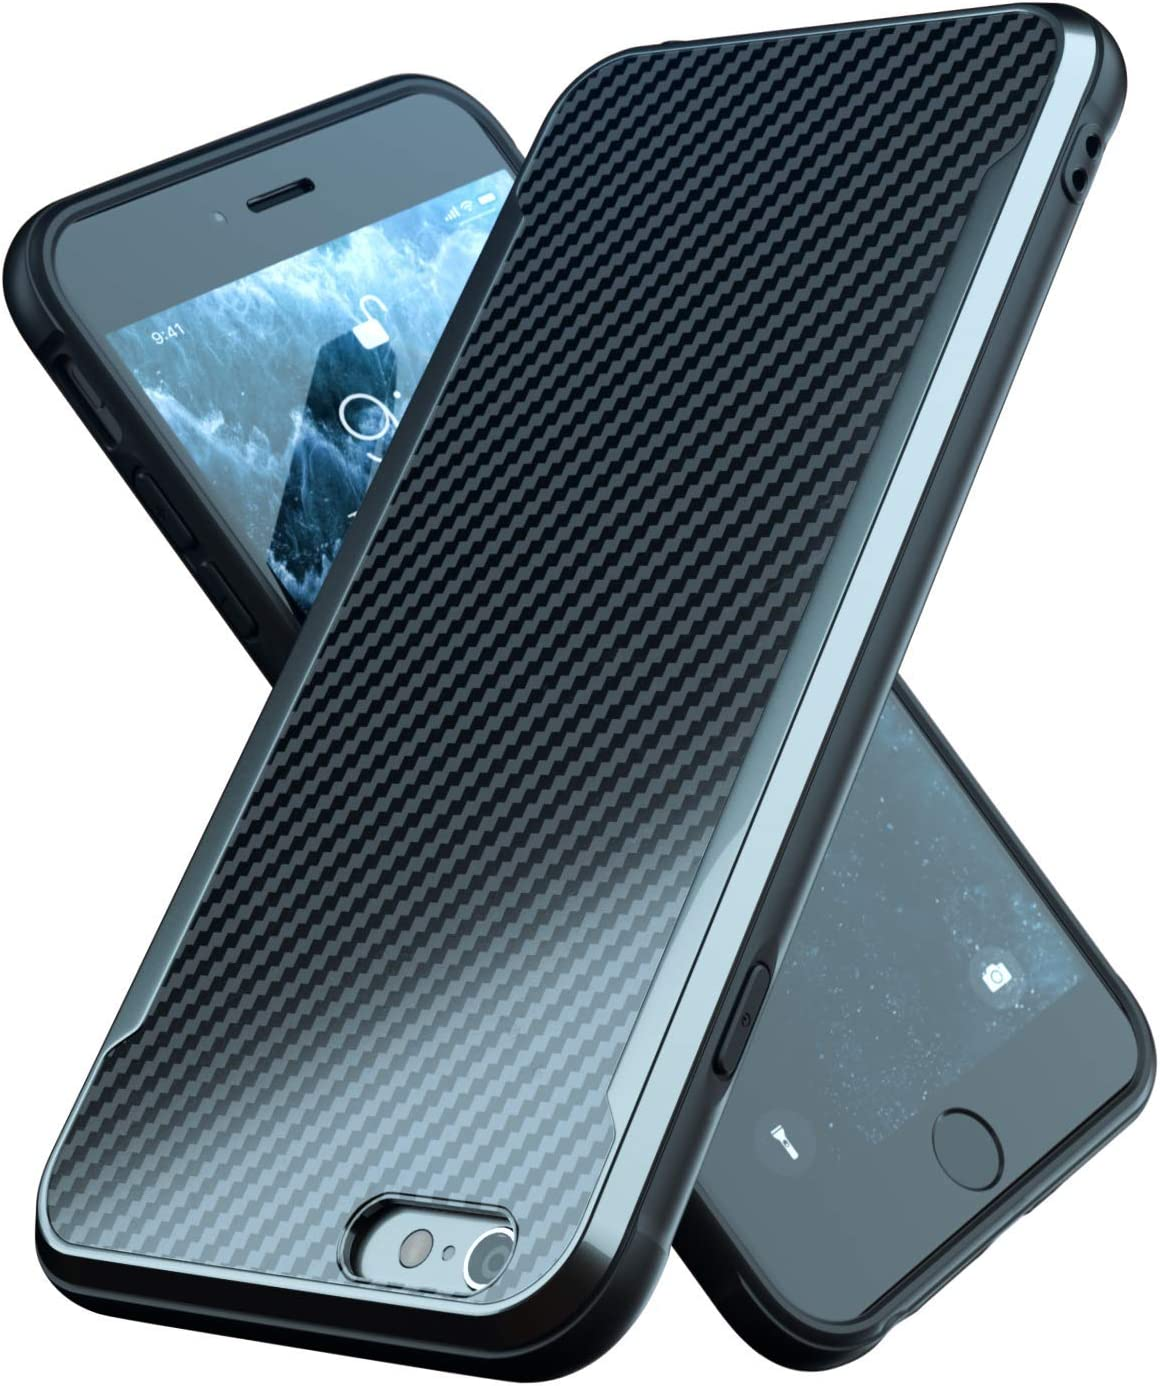 iPhone 6 Case | iPhone 6S Case | Shockproof | 12ft. Drop Tested | Carbon Fiber Case | Lightweight | Scratch Resistant | Compatible with iPhone 6/6S - Black